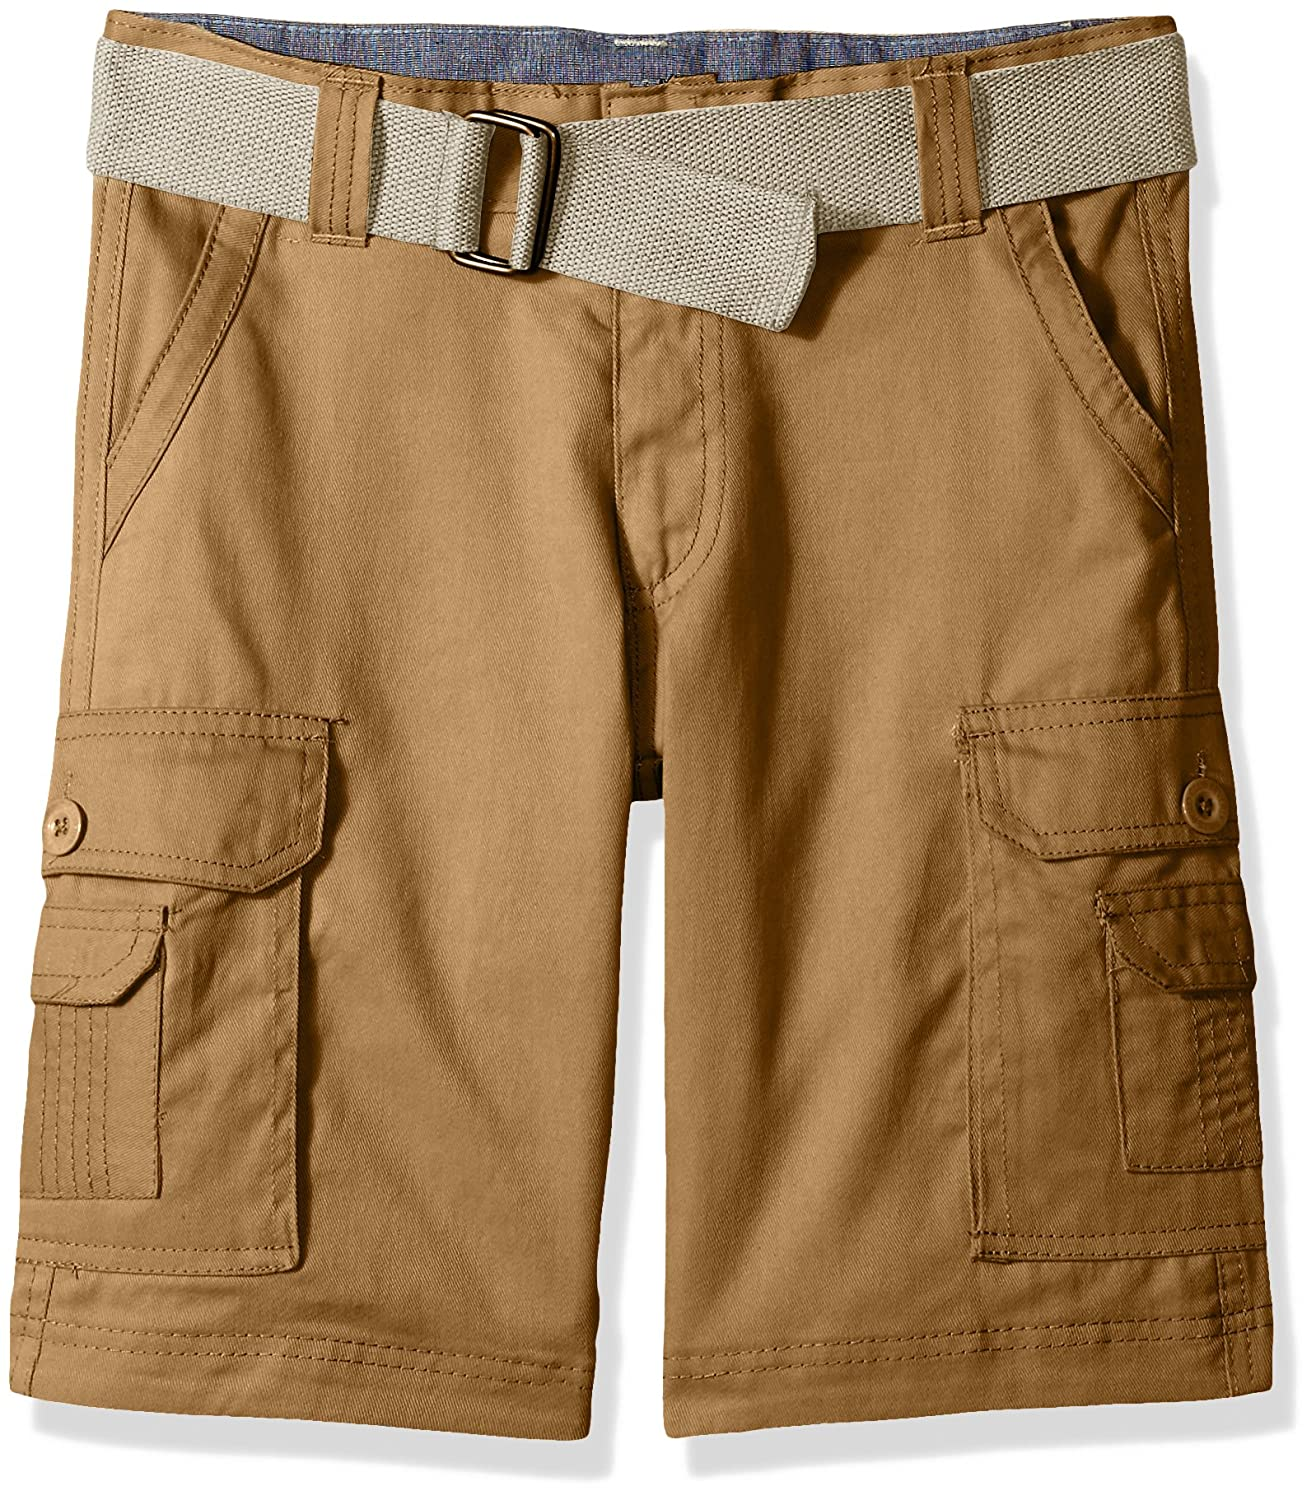 Beverly Hills Polo Club Boys' Belted Shorts